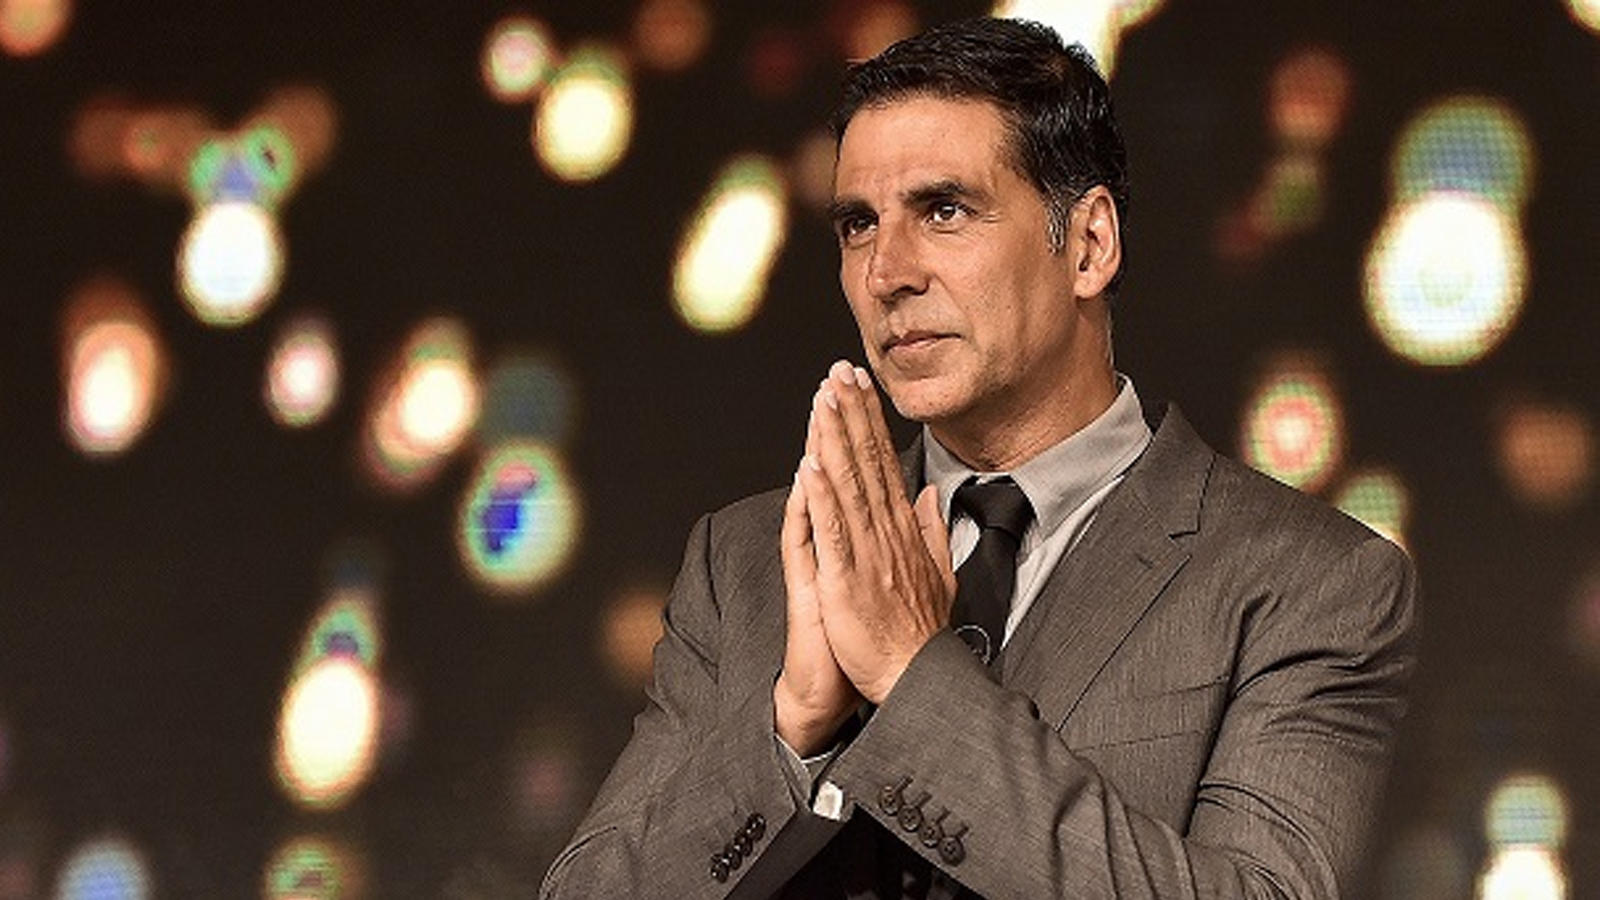 akshay-kumar-takes-52nd-spot-on-forbes-worlds-highest-paid-celebrities-2020-list-with-earnings-of-rs-366-crores